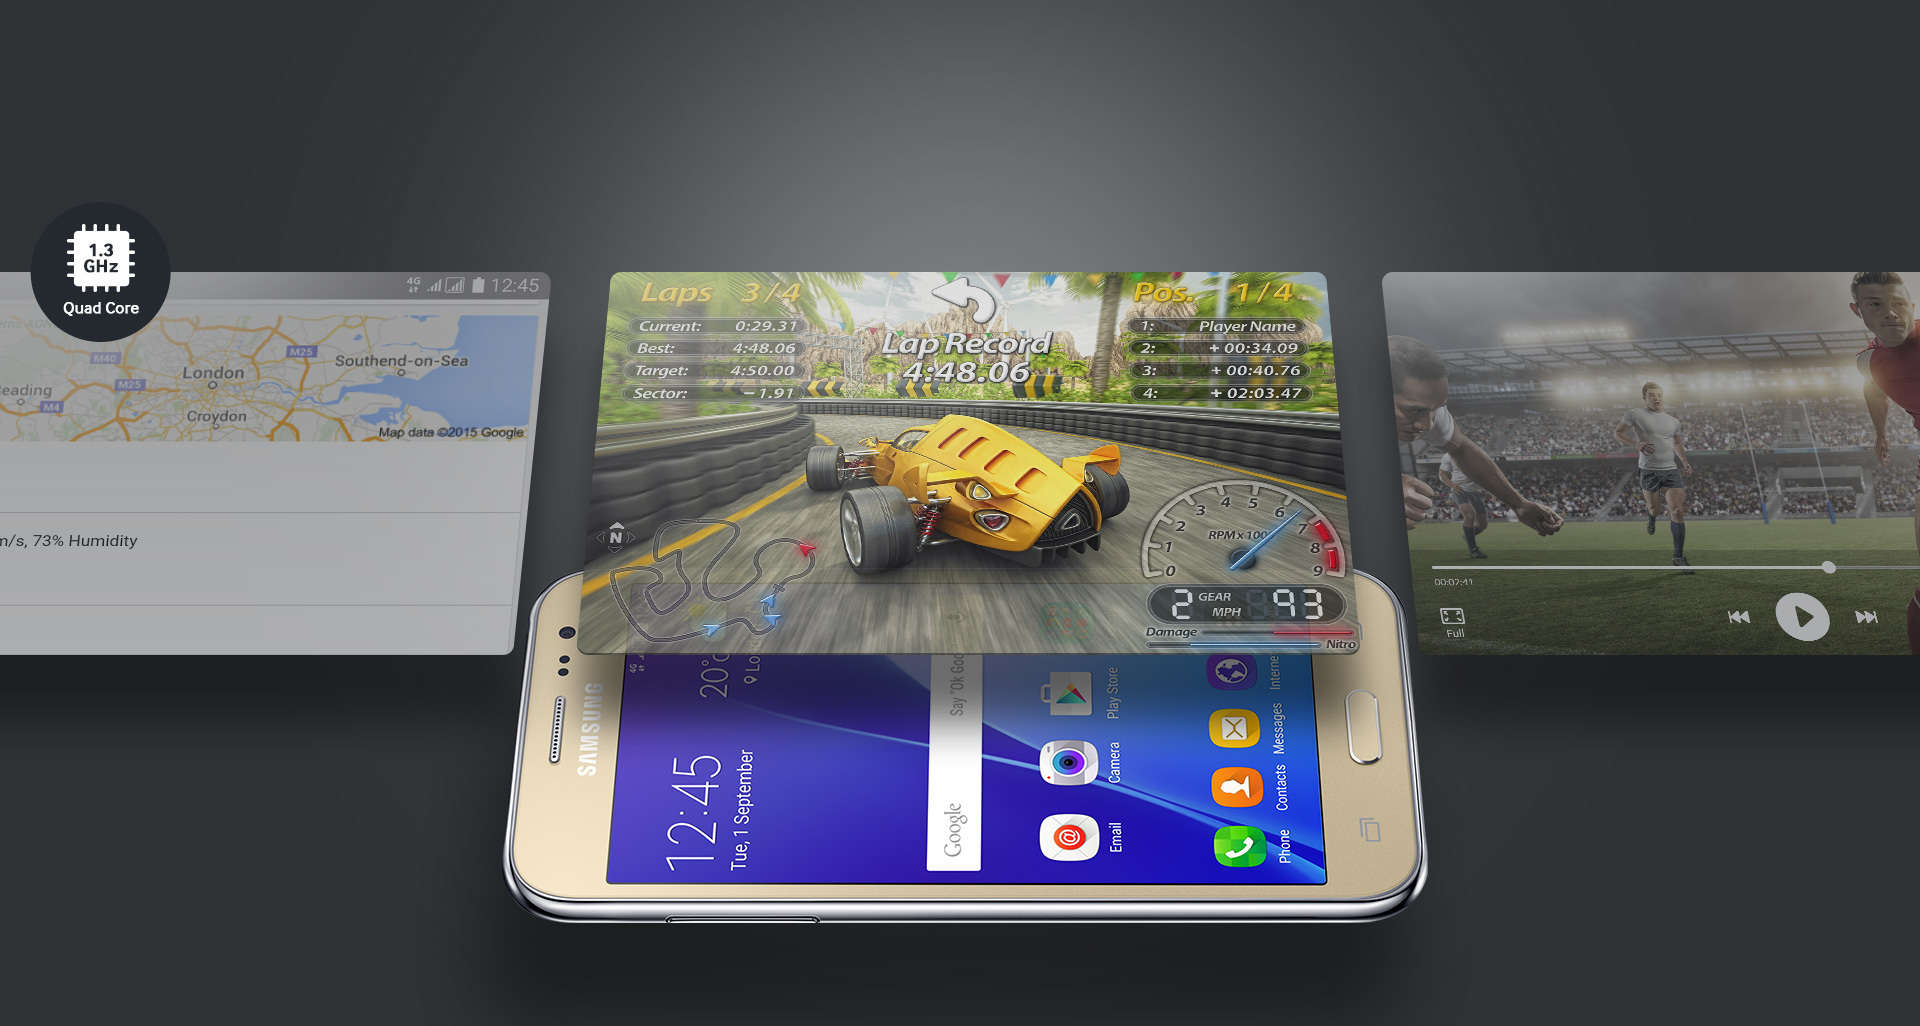 How to Root the Samsung Galaxy J2 (2015)